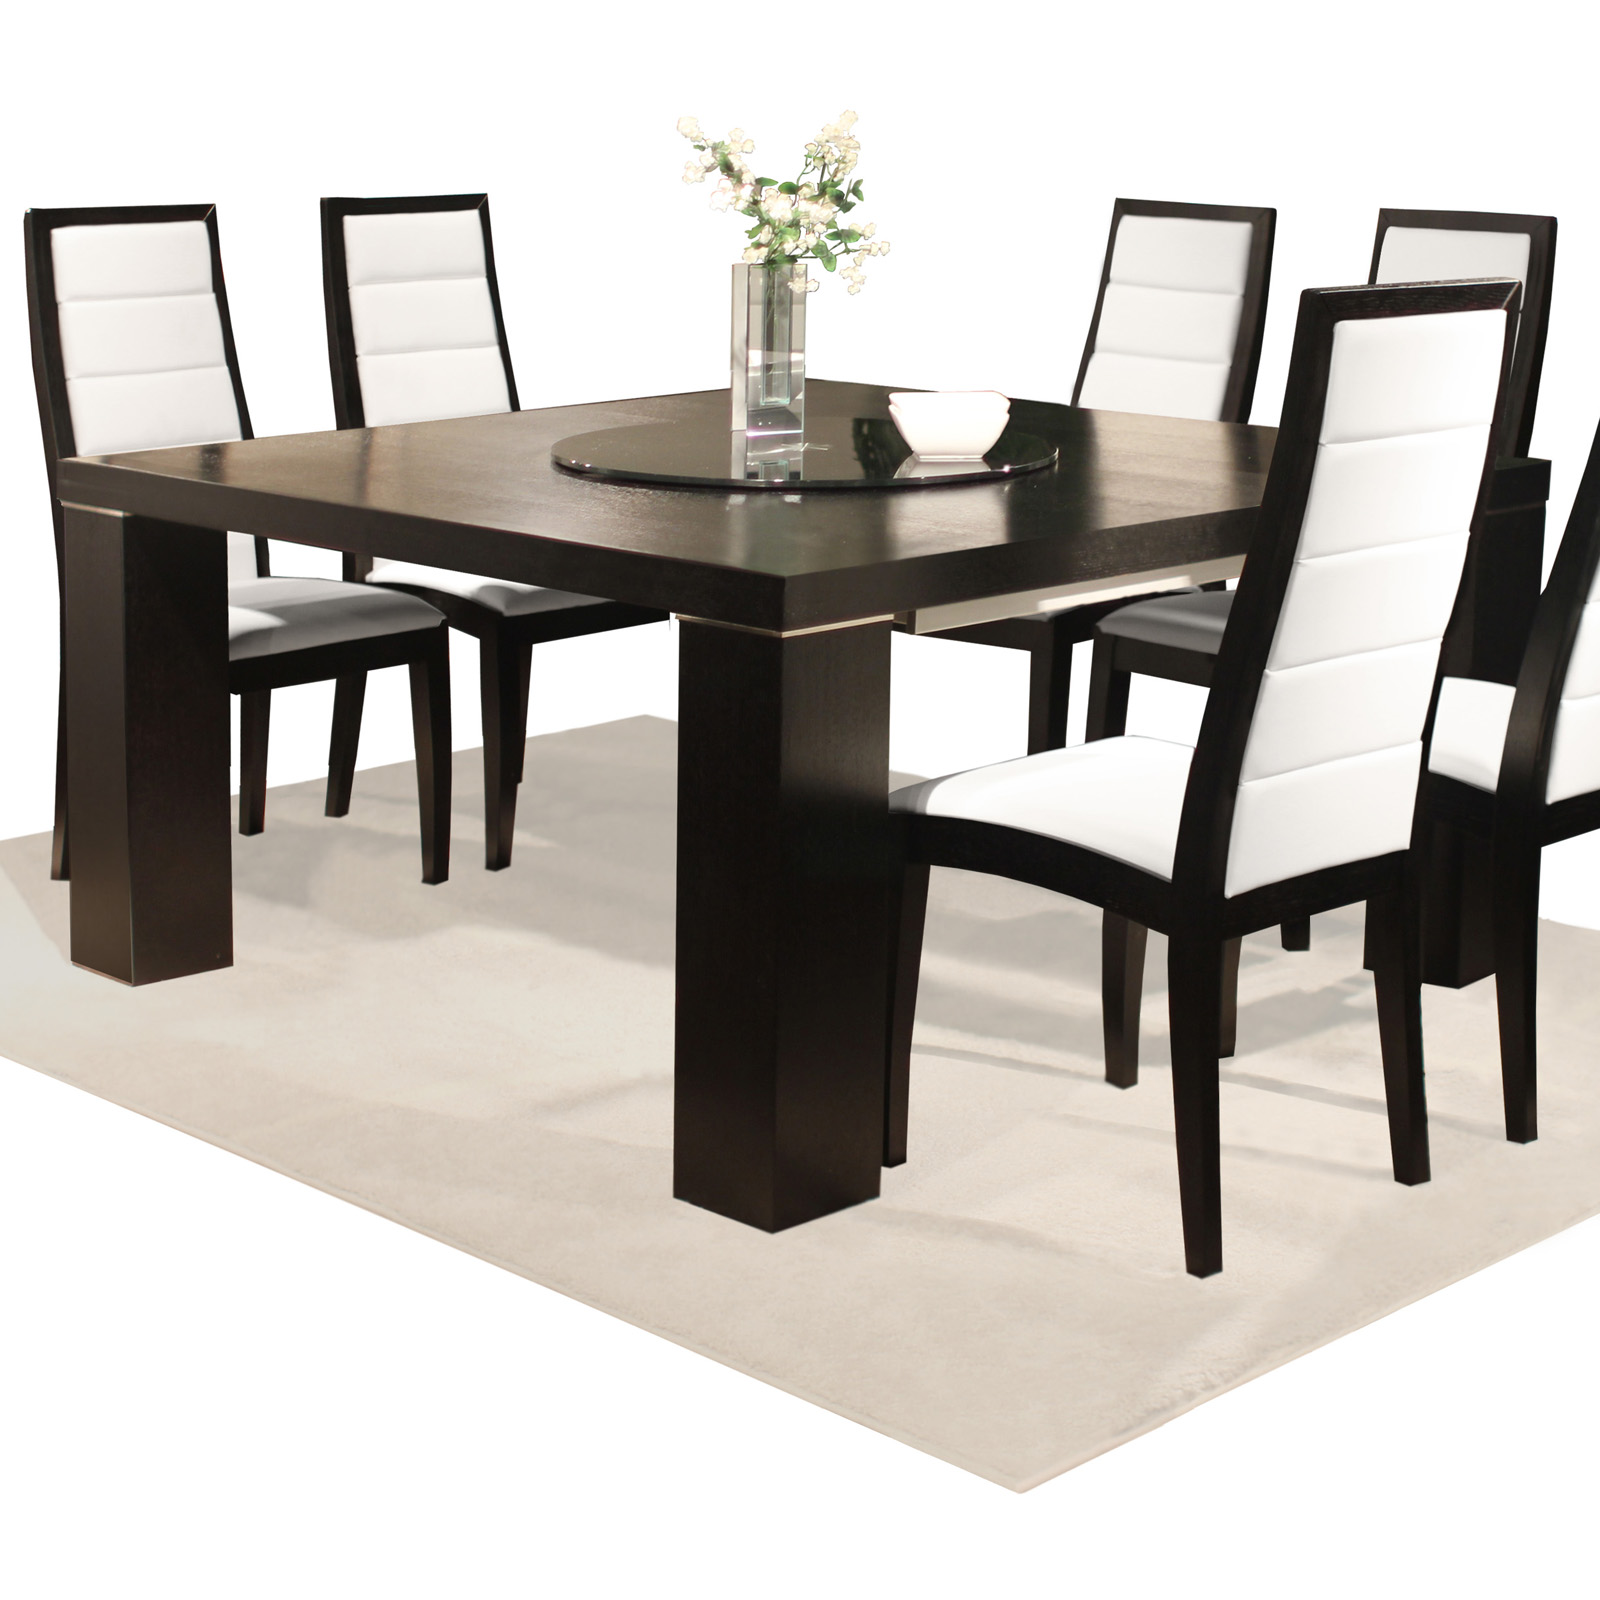 square extension dining table square extension dining table wenge dining 5667